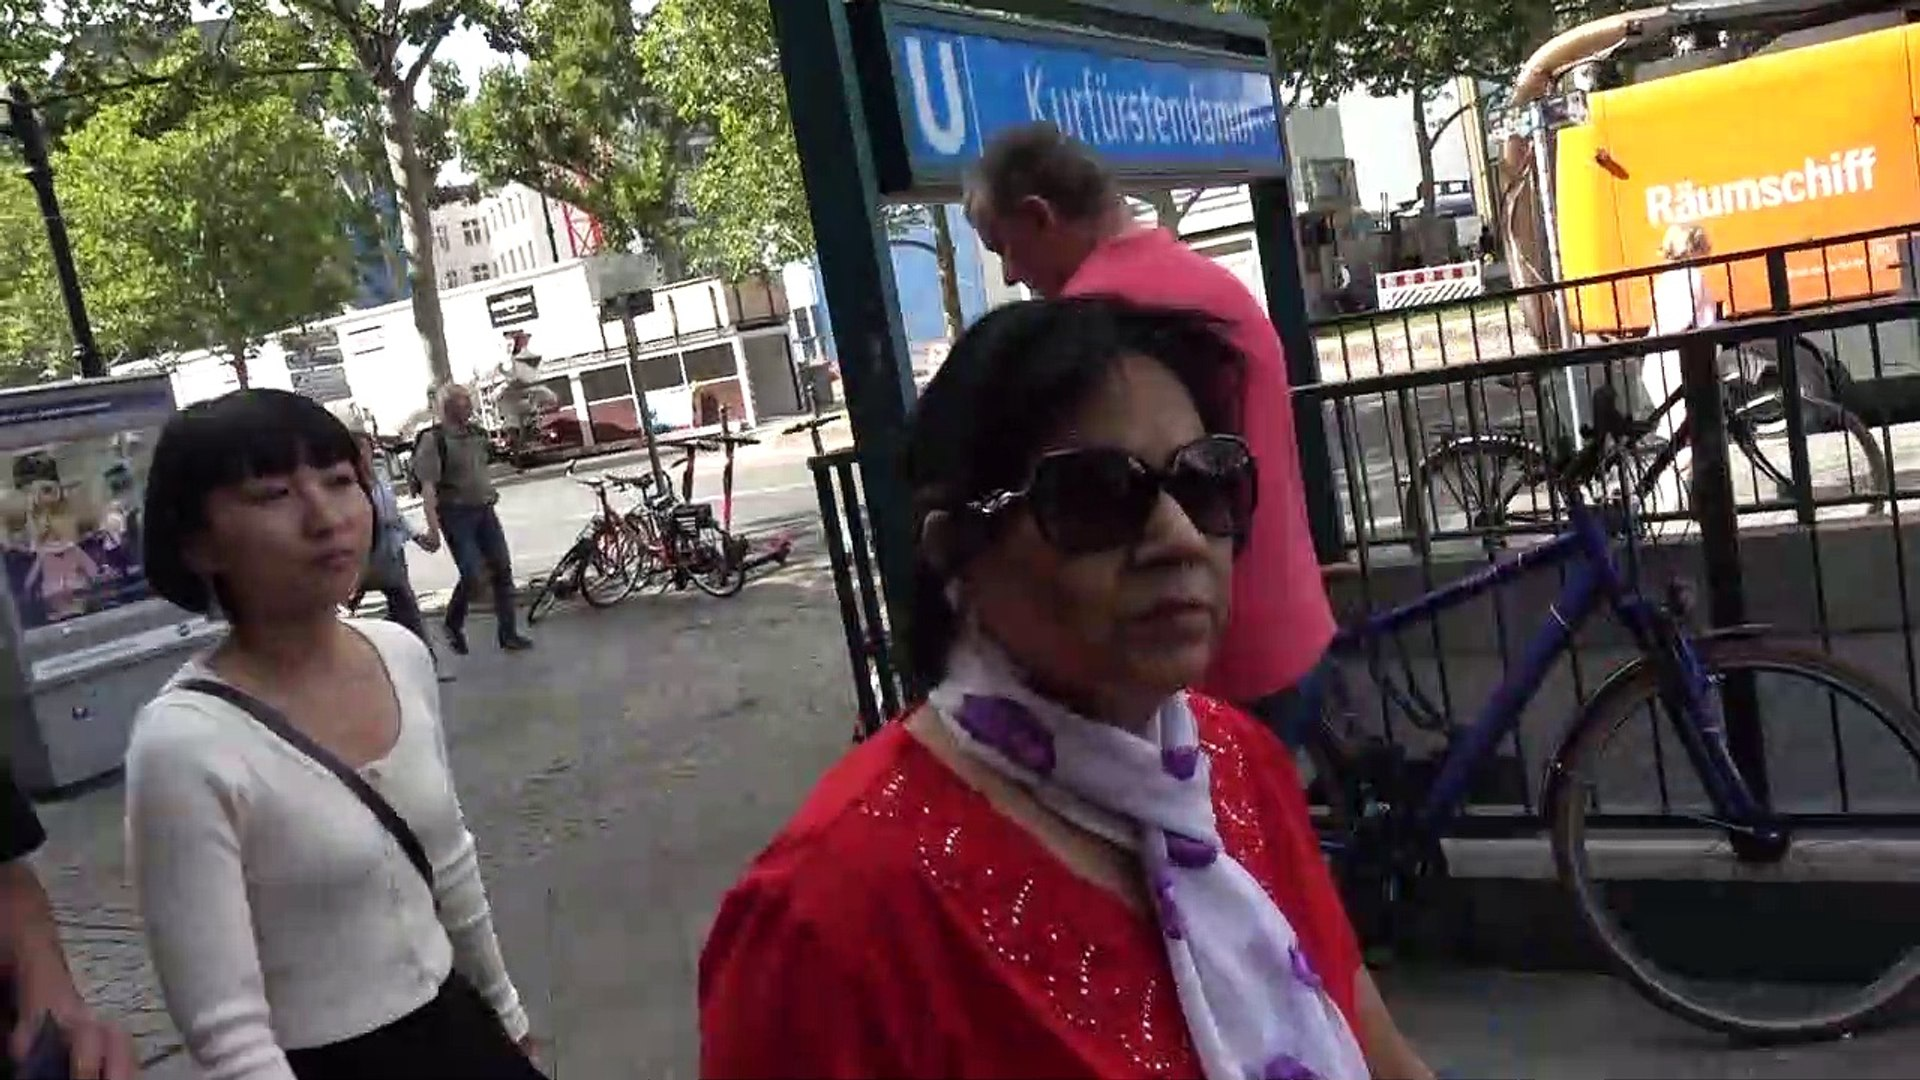 BDMV-211 Aruna & Hari Sharma walking at Kurfürstendamm 227-229, 10719 Berlin Aug 13, 2019